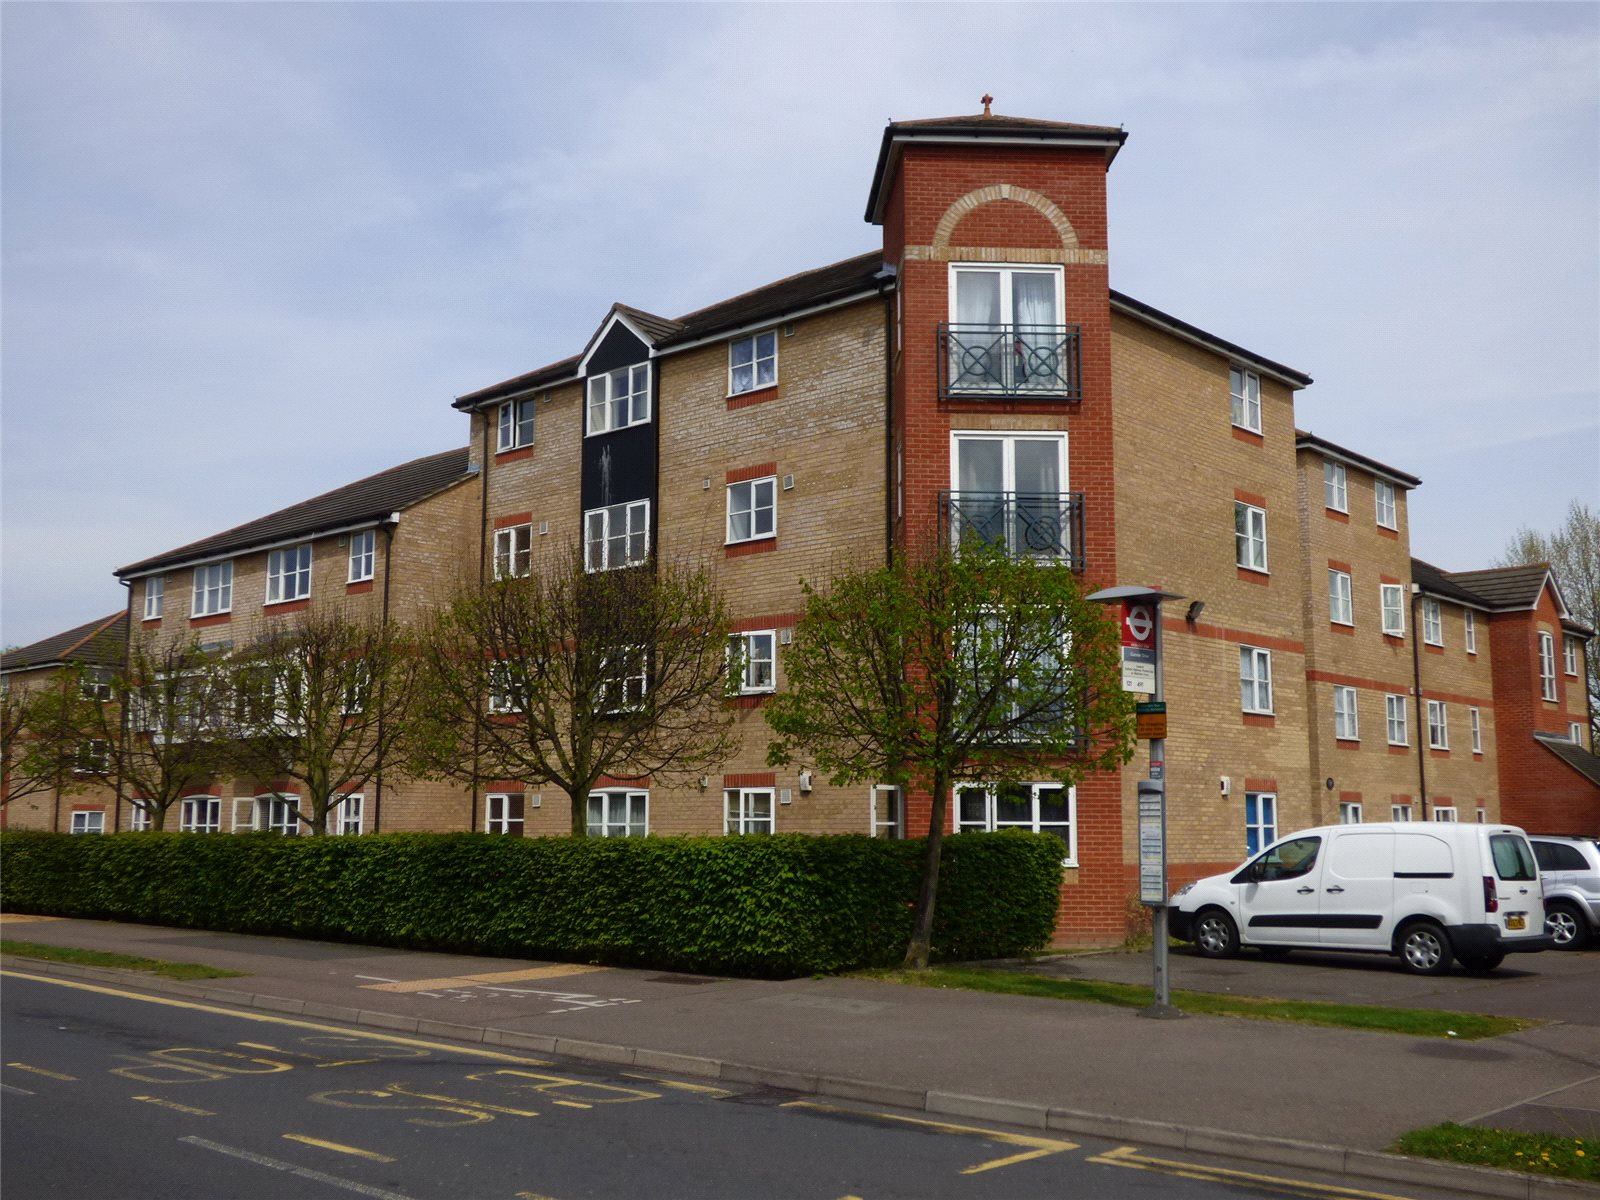 2 Bedrooms Flat for sale in Morris Court Enfield Greater London EN3